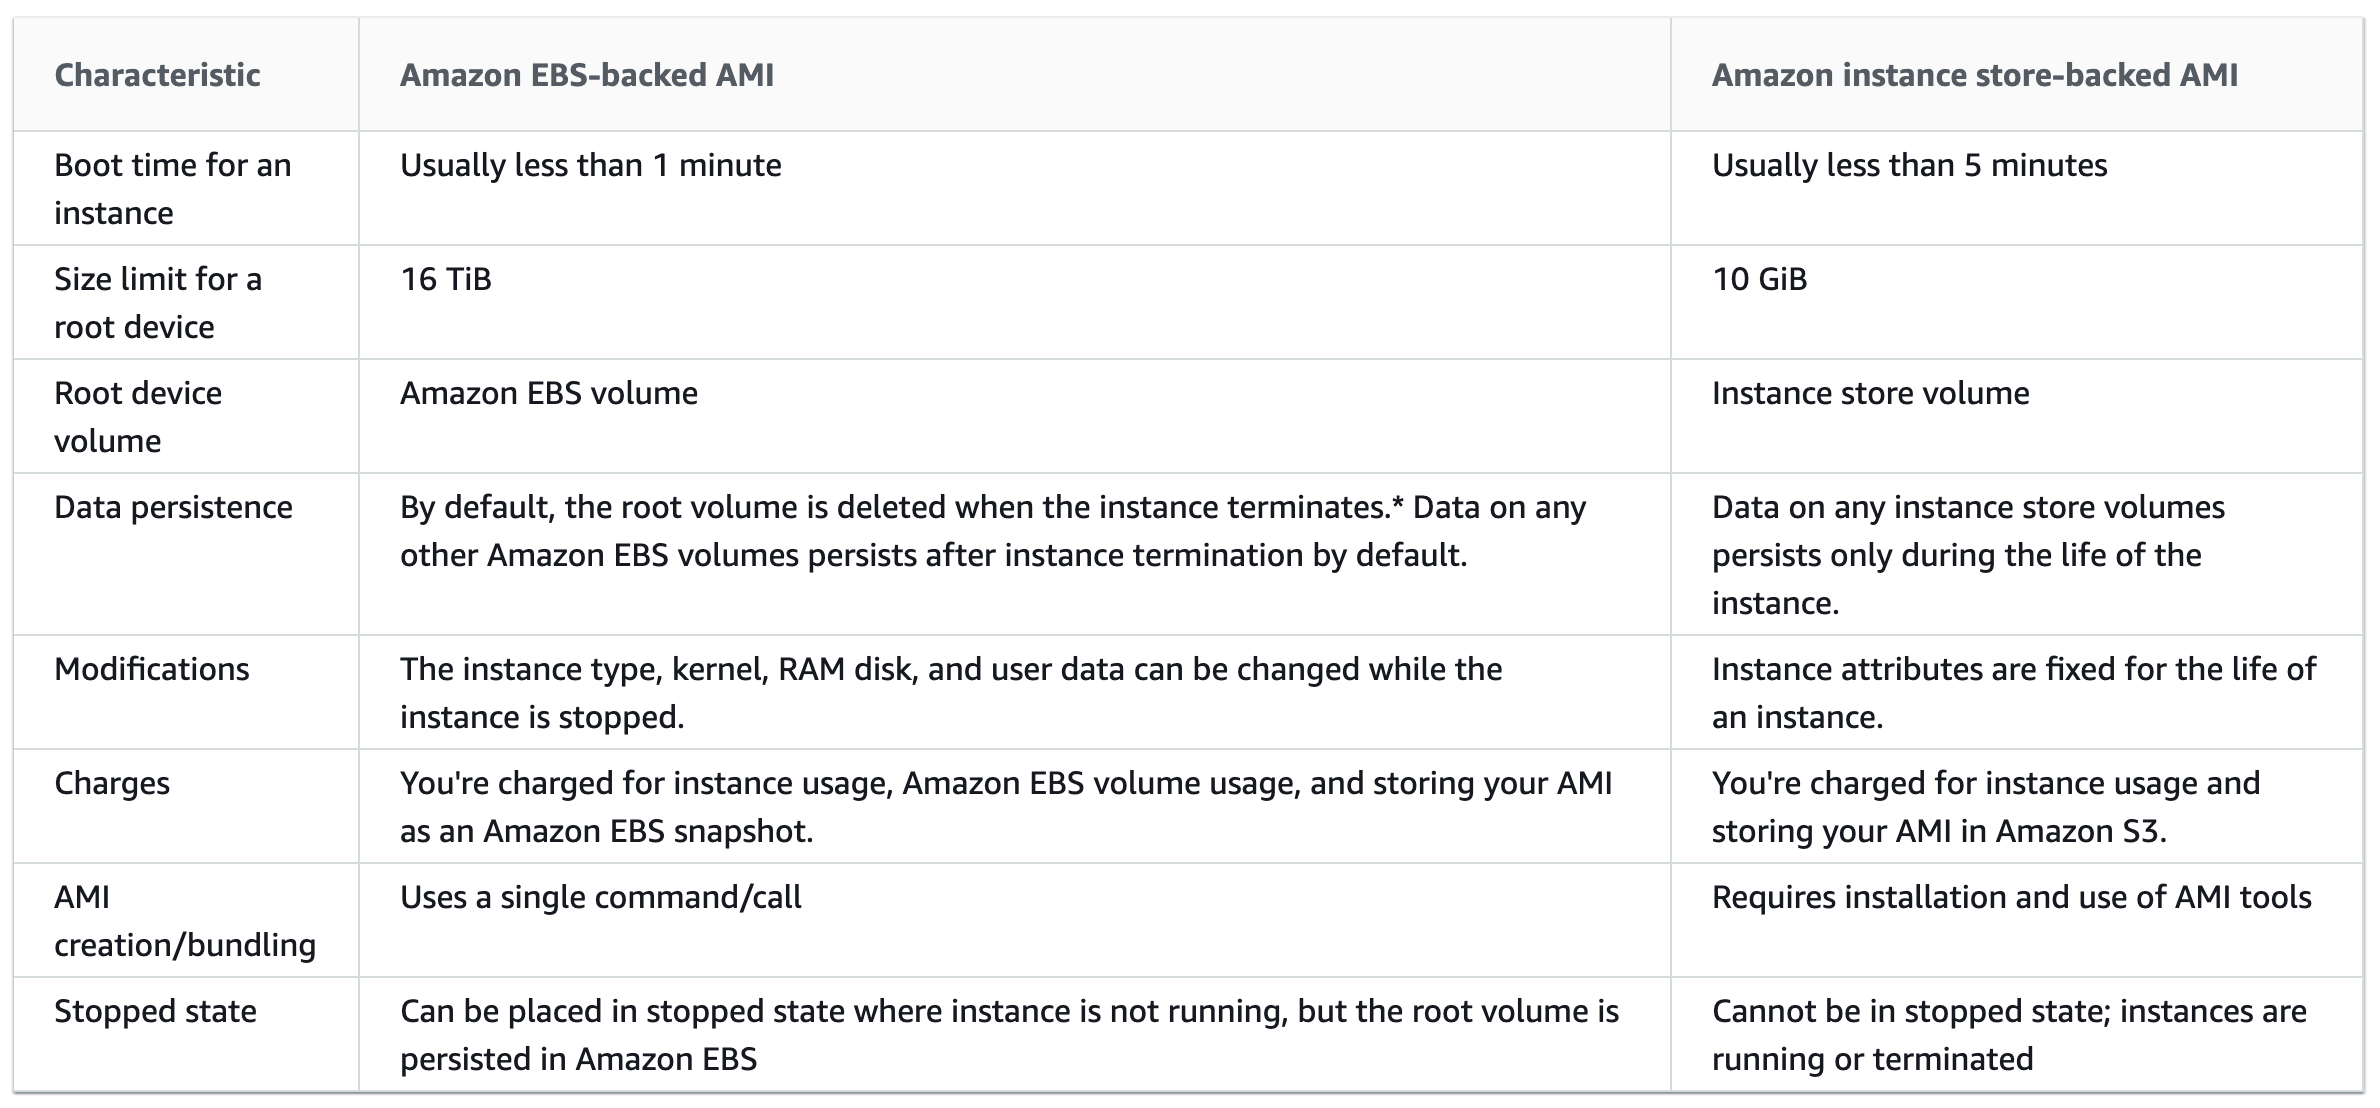 Amazon EBS-backed AMI vs Instance Store-backed AMI